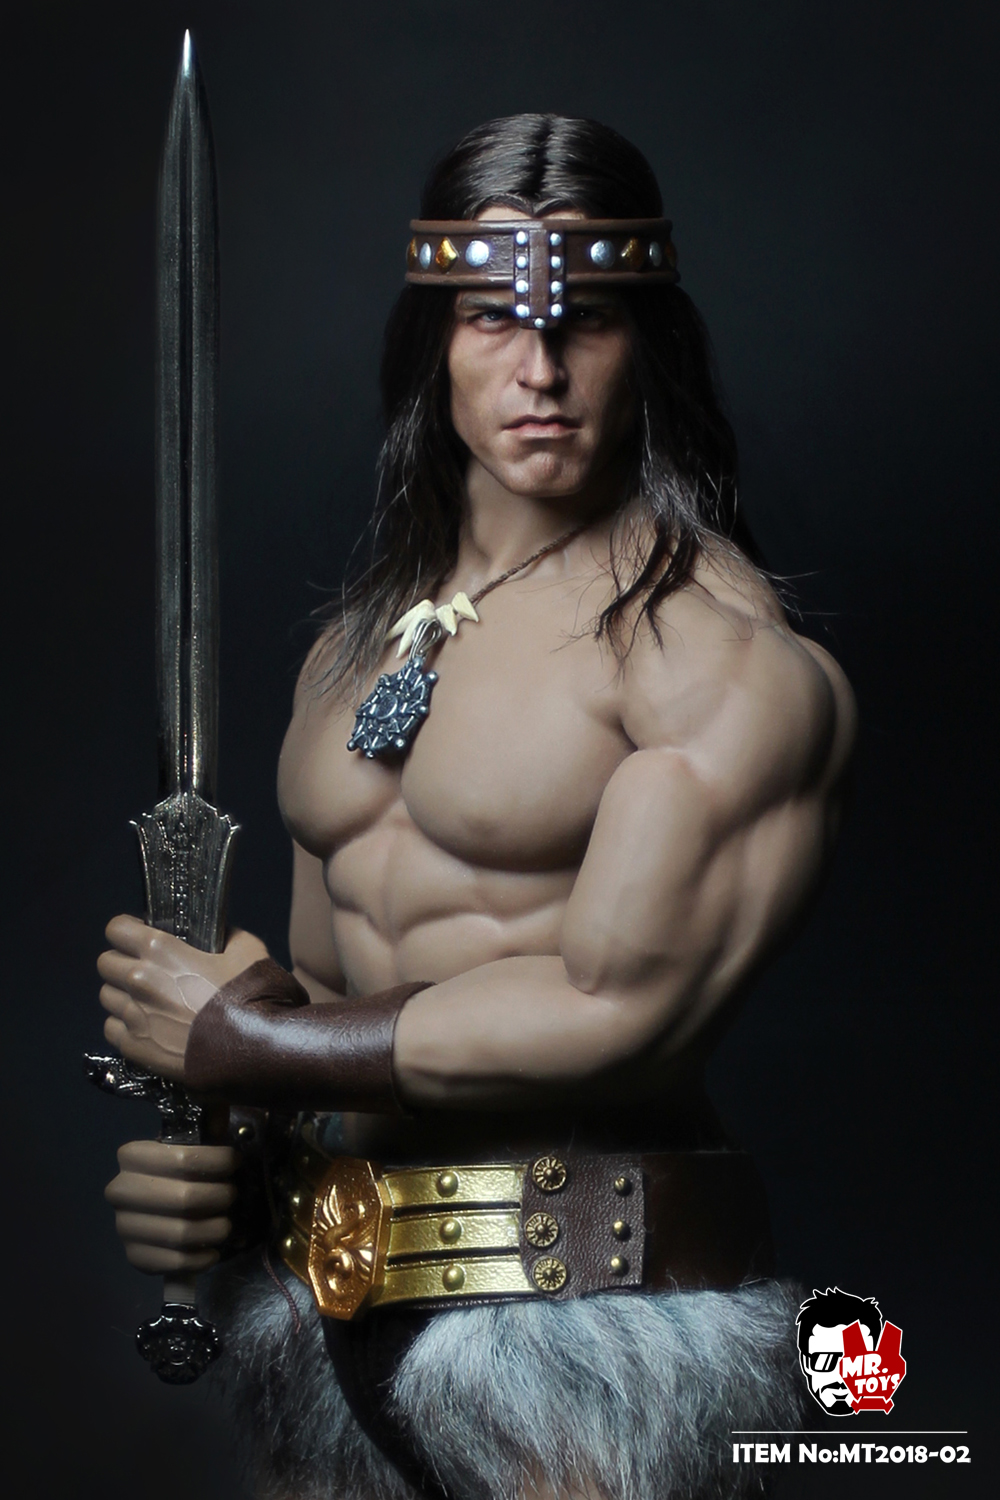 NEW PRODUCT:  Mr. Toys MT2018-02 1/6 Conan head carving costume set O1cn0112